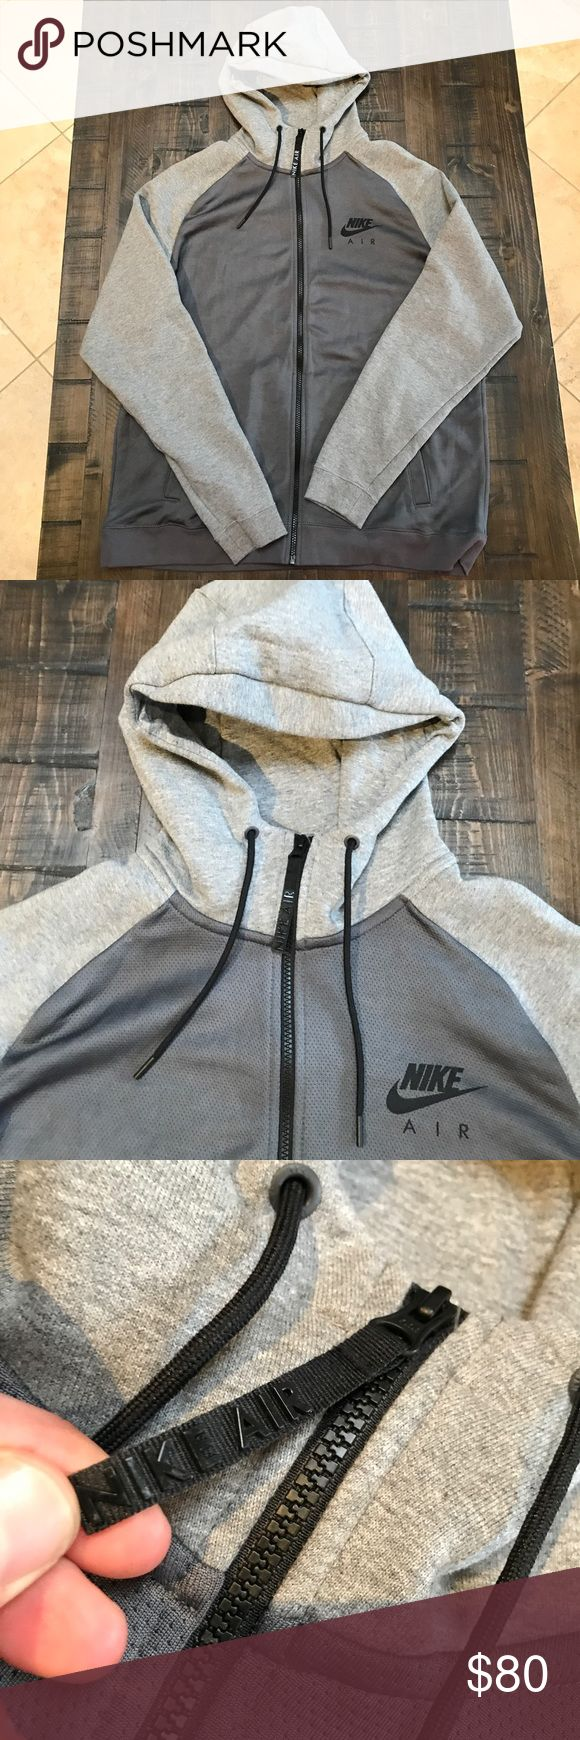 NWT NIKE ZIP THROUGH RAGLAN HOODIE MENS SIZE XL BRAND NEW NIKE ZIP UP RAGLAN HOODIE MENS SIZE XL 100% AUTHENTIC. (CHECK OUT THE COOL HOOD ON THIS THING)!!!  SHIPS SAME OR NEXT DAY FROM MY SMOKE FREE HOME.   REASONABLE OFFERS WILL ONLY BE CONSIDERED THROUGH THE OFFER BUTTON. ANY OFFERS IN COMMENTS WILL BE IGNORED.   BUNDLE DISCOUNT SUBJECT TO MY APPROVAL. ✨   TRUSTED RELIABLE SELLER. ALL PRODUCT IS 100% AUTHENTIC & DIRECT FROM NIKE Nike Shirts Sweatshirts & Hoodies